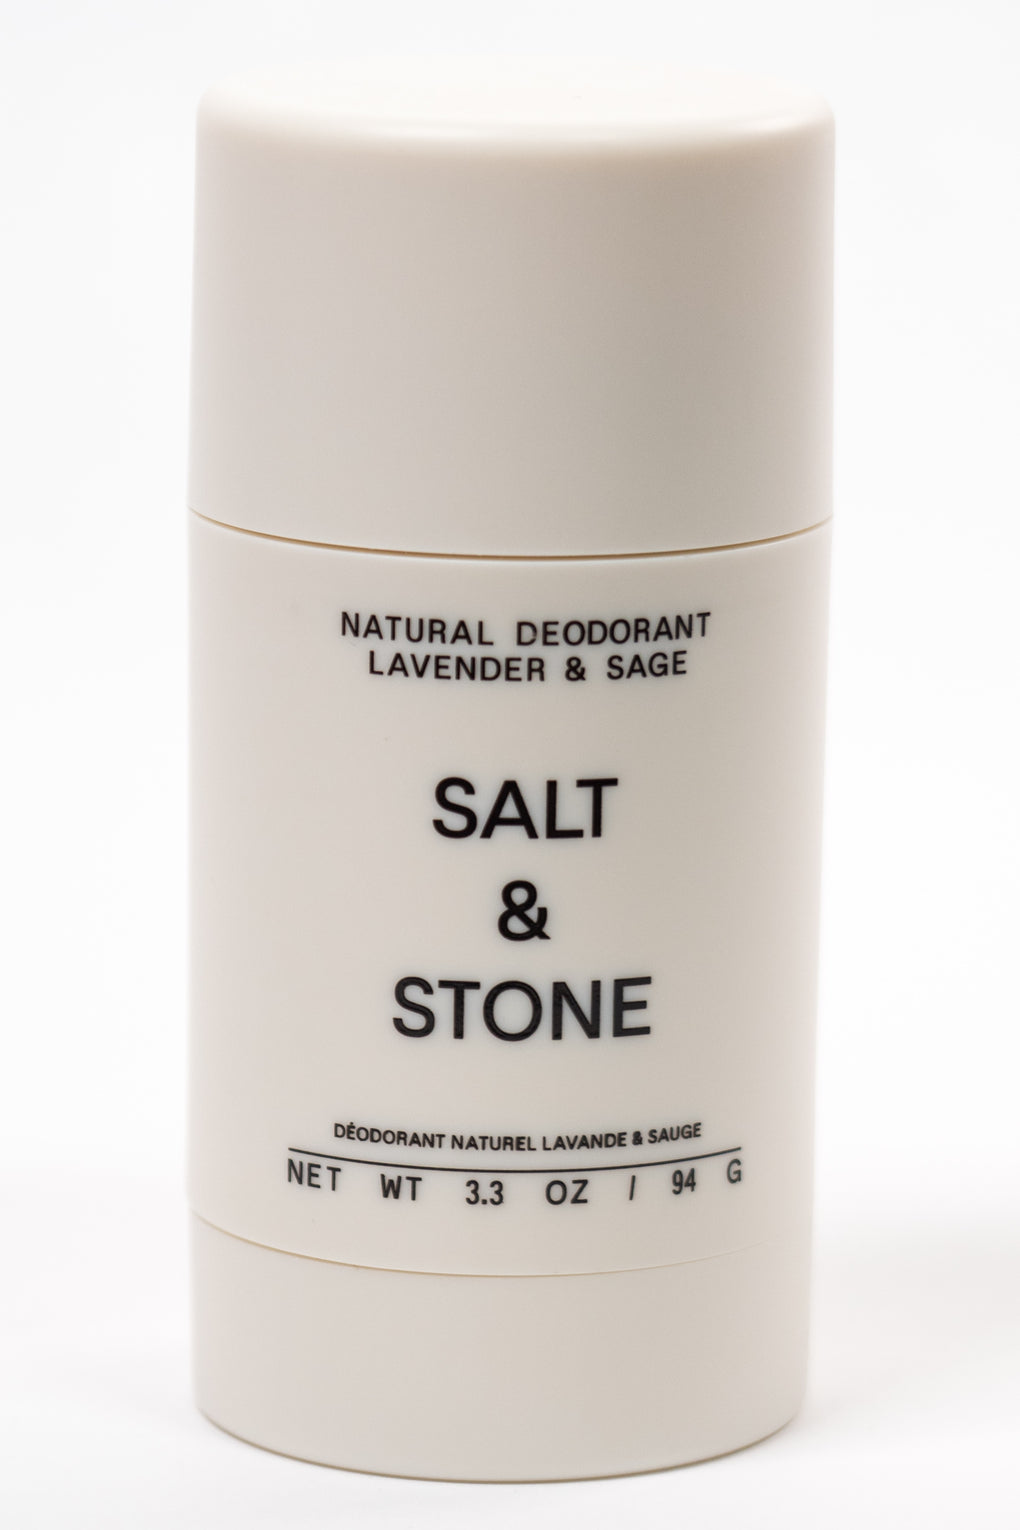 Salt & Stone Deodorant at Consigliere